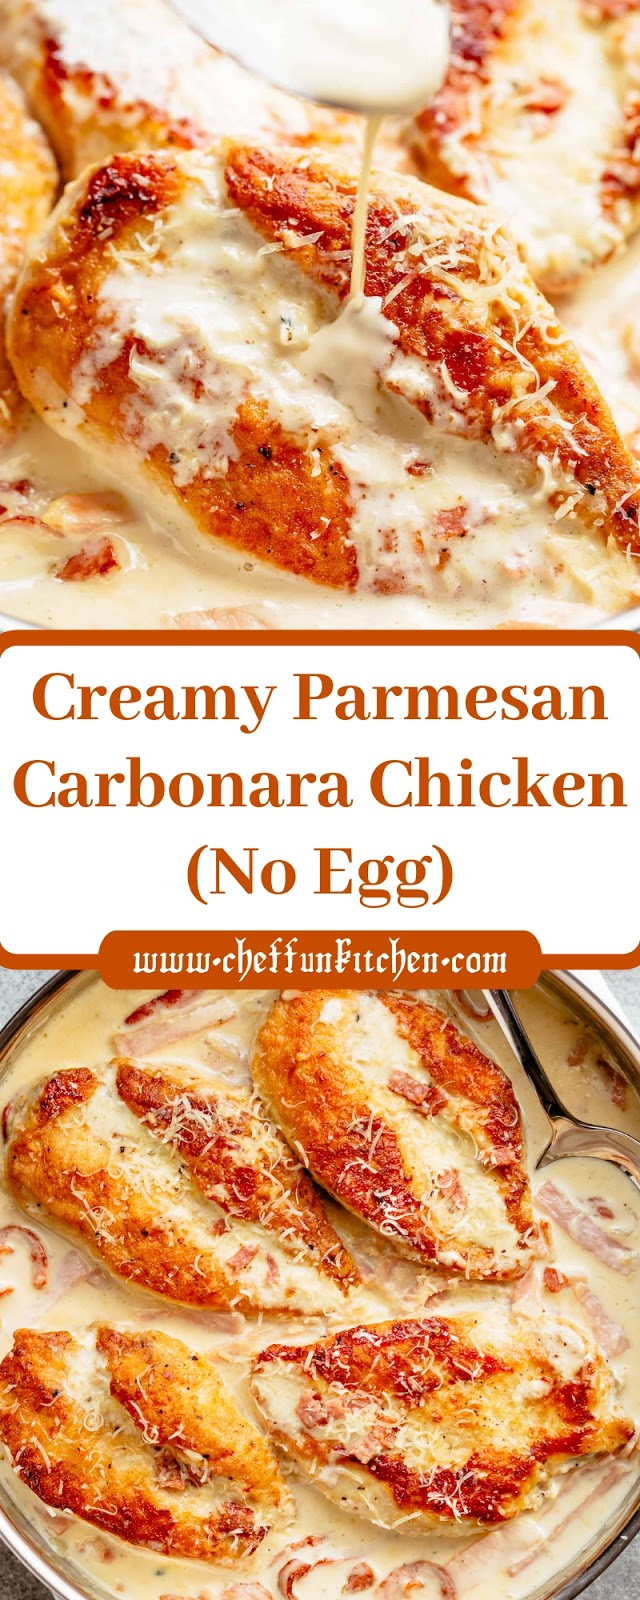 Creamy Parmesan Carbonara Chicken (No Egg)